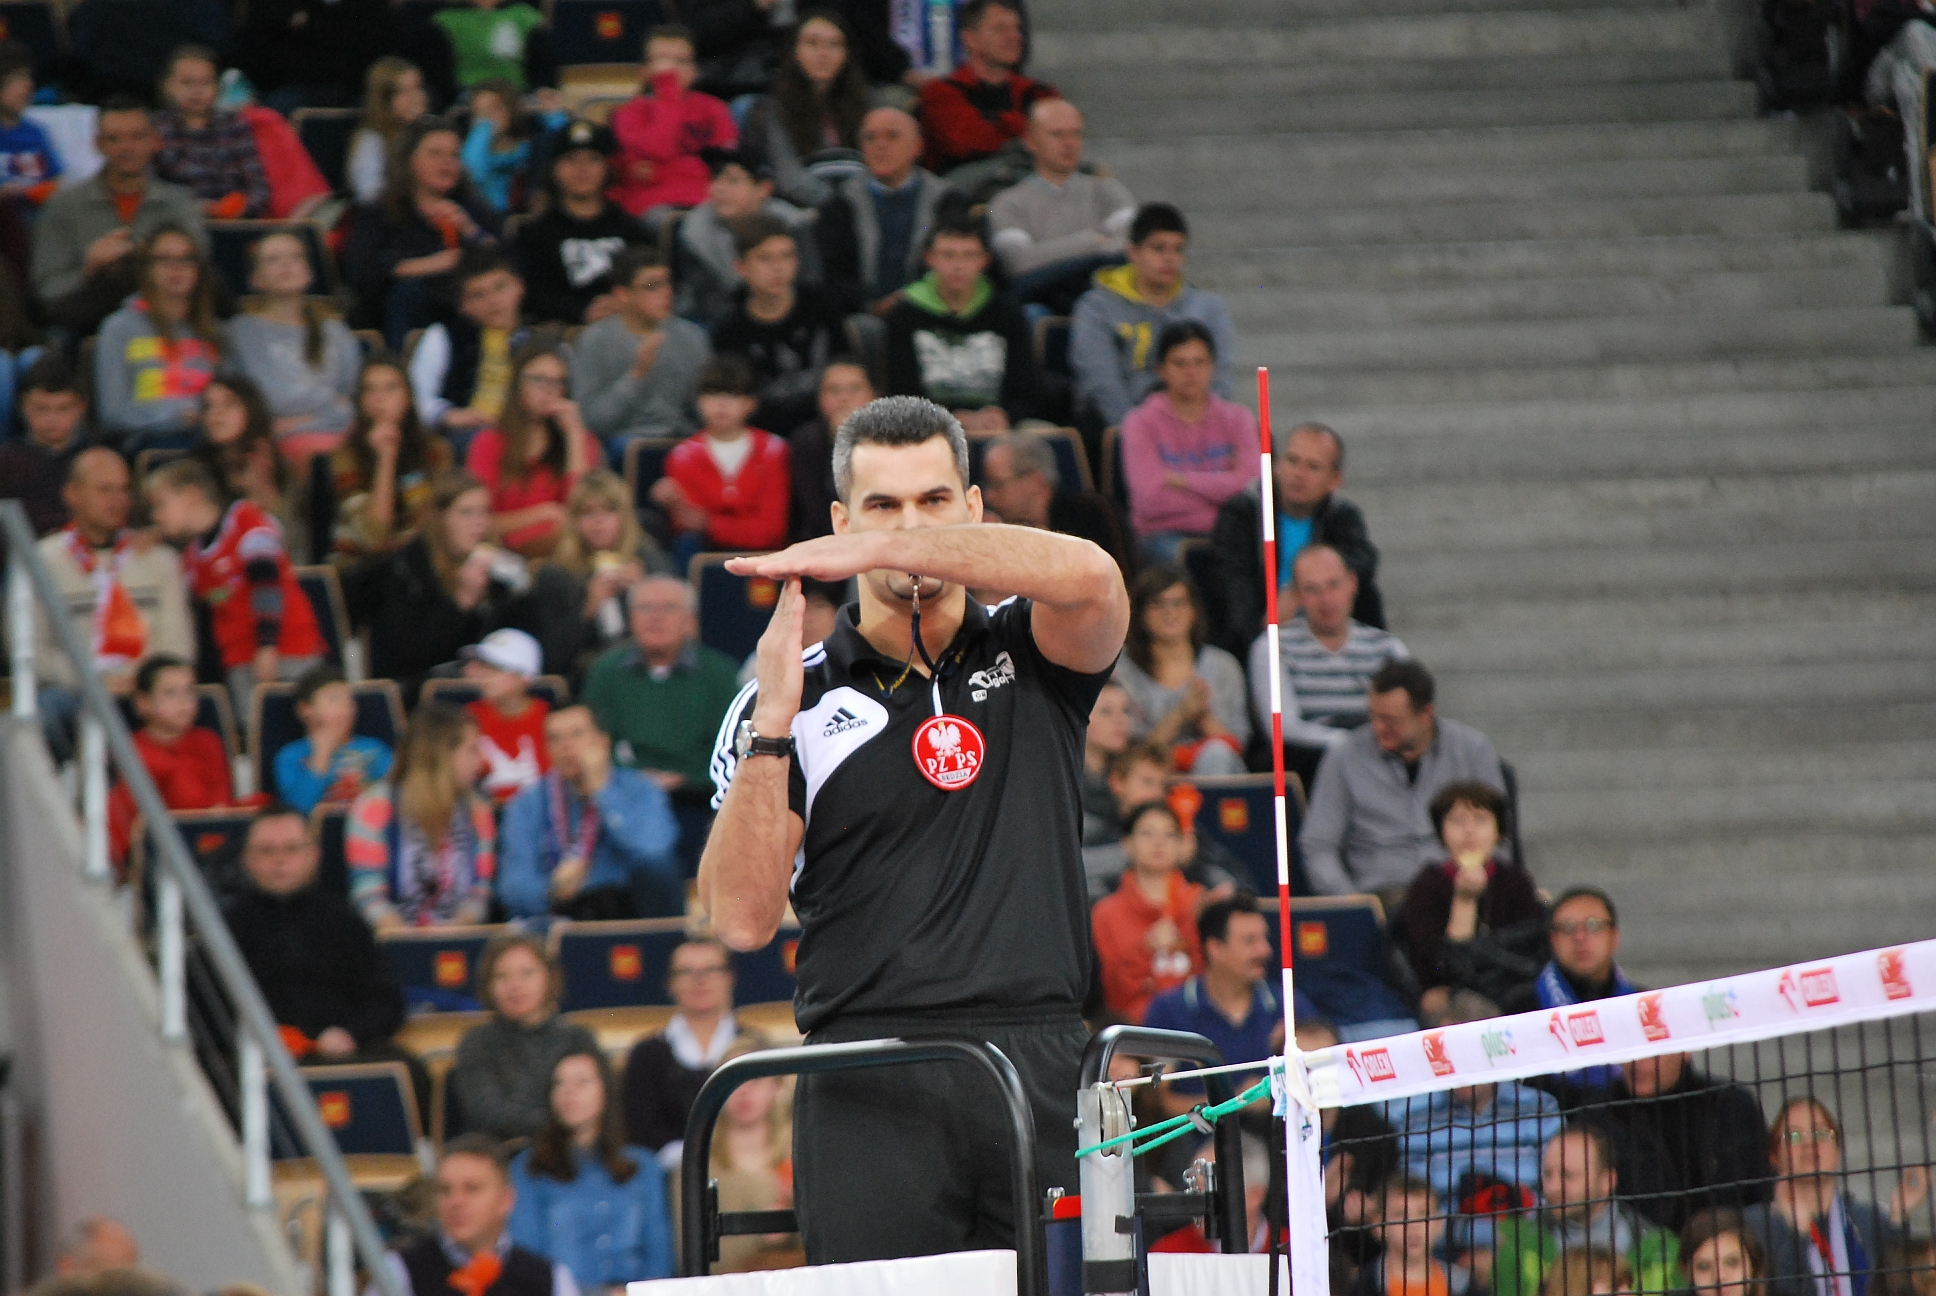 File:Official volleyball signals - time out.jpg - Wikimedia Commons